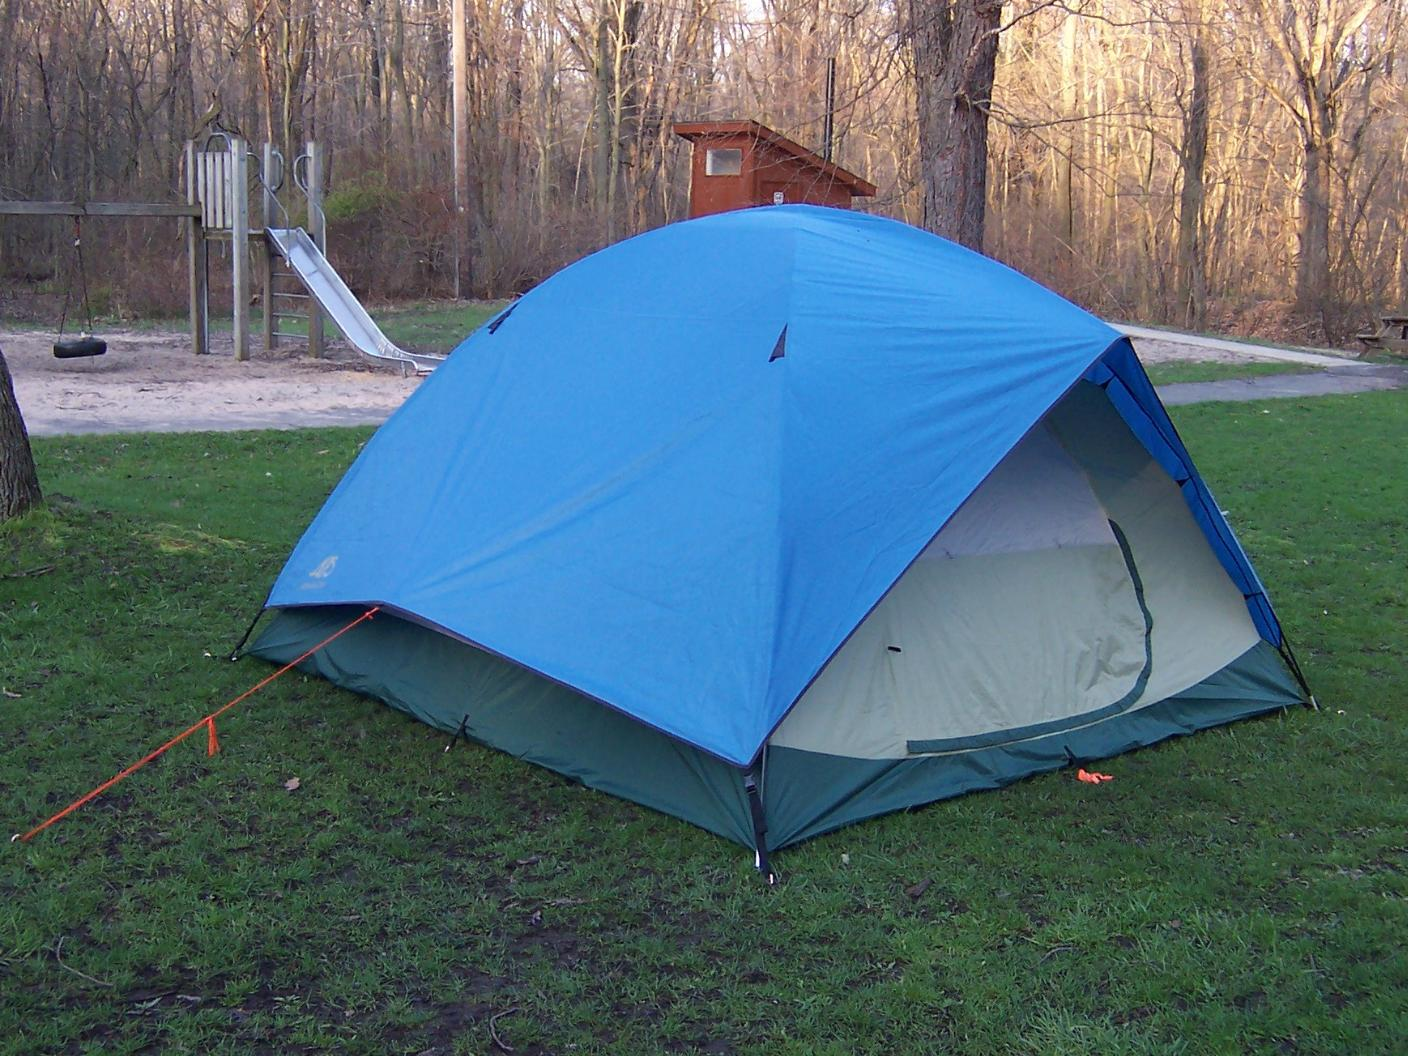 Here are some pics of my Alps Moutaineering Taurus Outfitter 5-person (tan) and my Alps Mountaineering Meramac 6-person (blue) & BWCA Alps Mountaineering Tent Boundary Waters Gear Forum